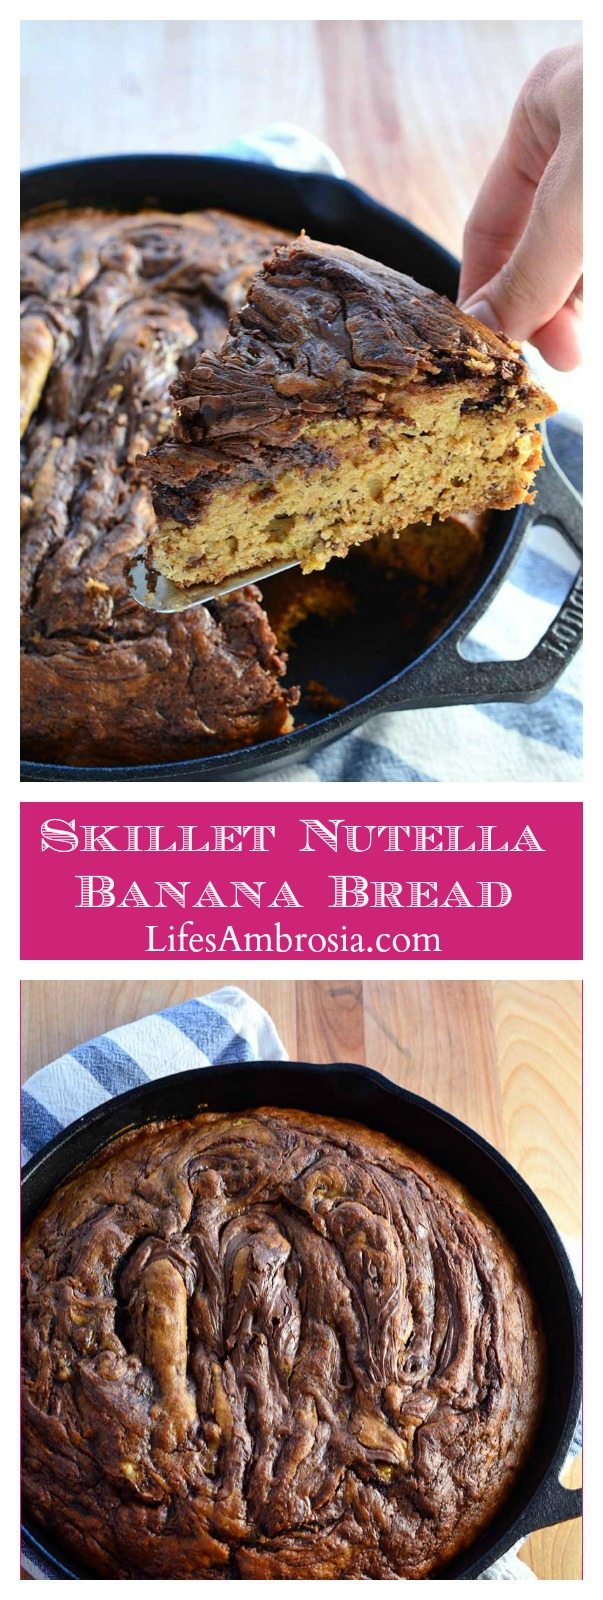 This skillet Nutella banana bread is moist, decadent and loaded with bananas and Nutella. It makes a great breakfast AND dessert.